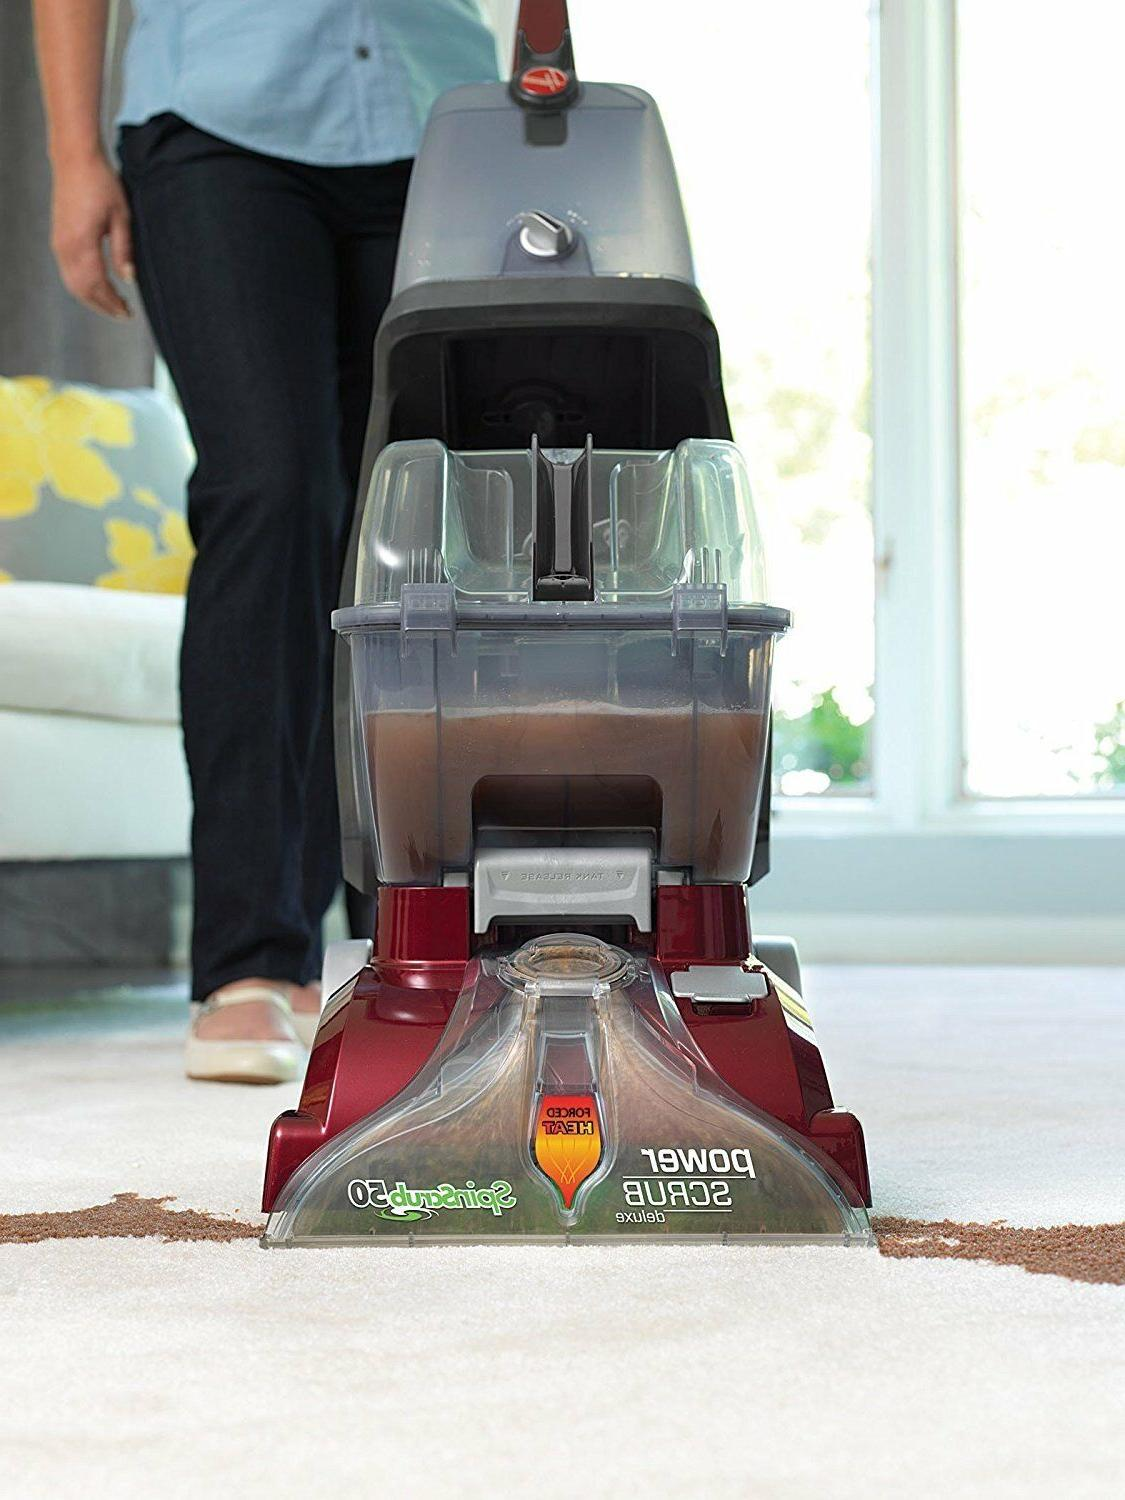 shampoo carpet vacuum power cleaner machine clean